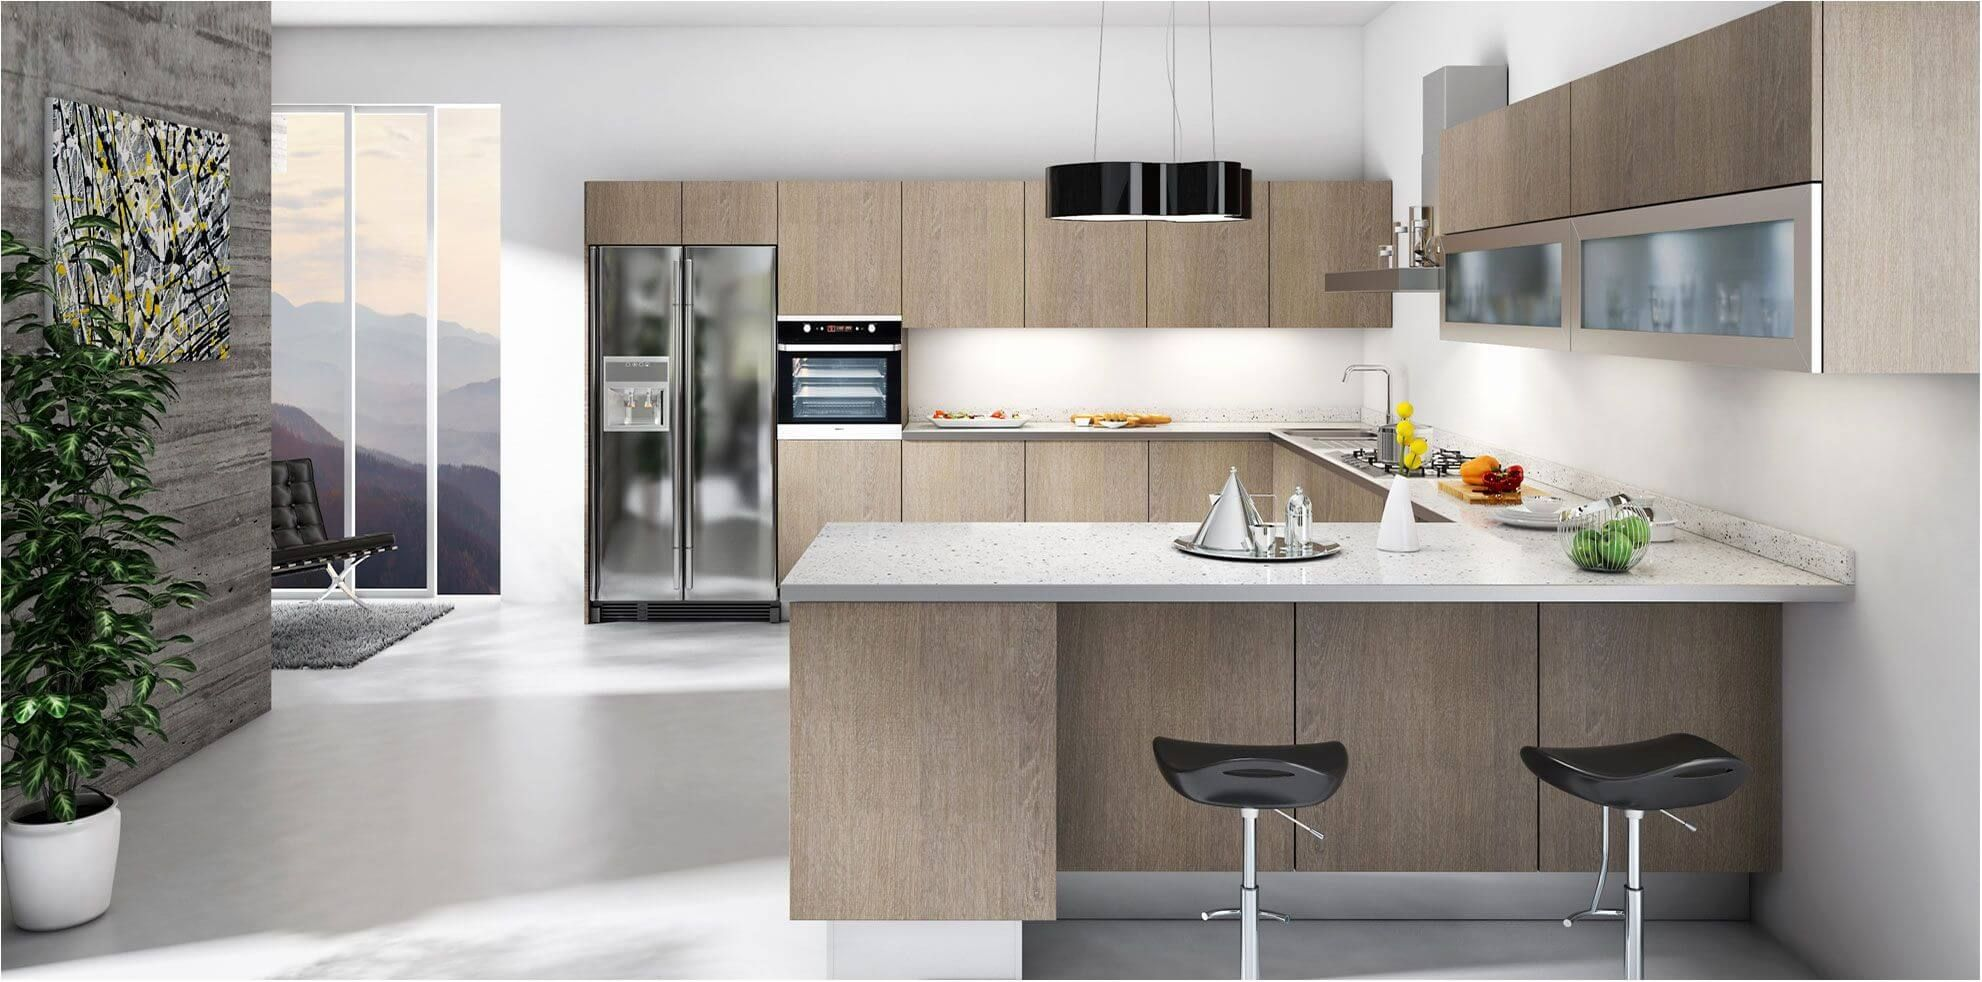 Best European Kitchen Design For You In 2018 And Beyond With